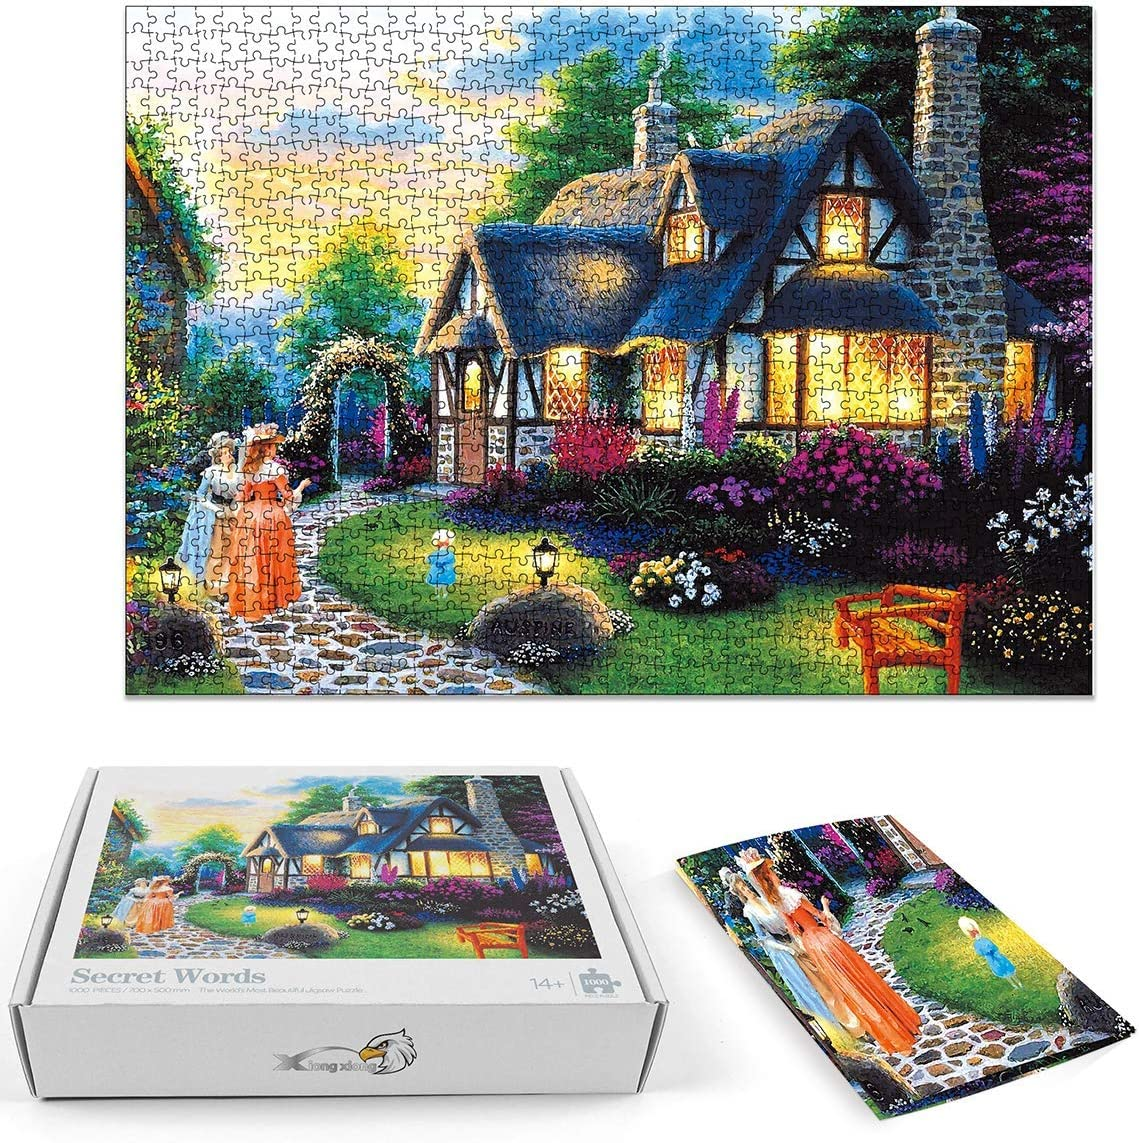 19.2 x 19.2 Dream Flower God Difficult Challenge Educational Intellectual Decompressing Interesting Puzzle 500 Pieces for Adults Teens Fun Puzzles Games